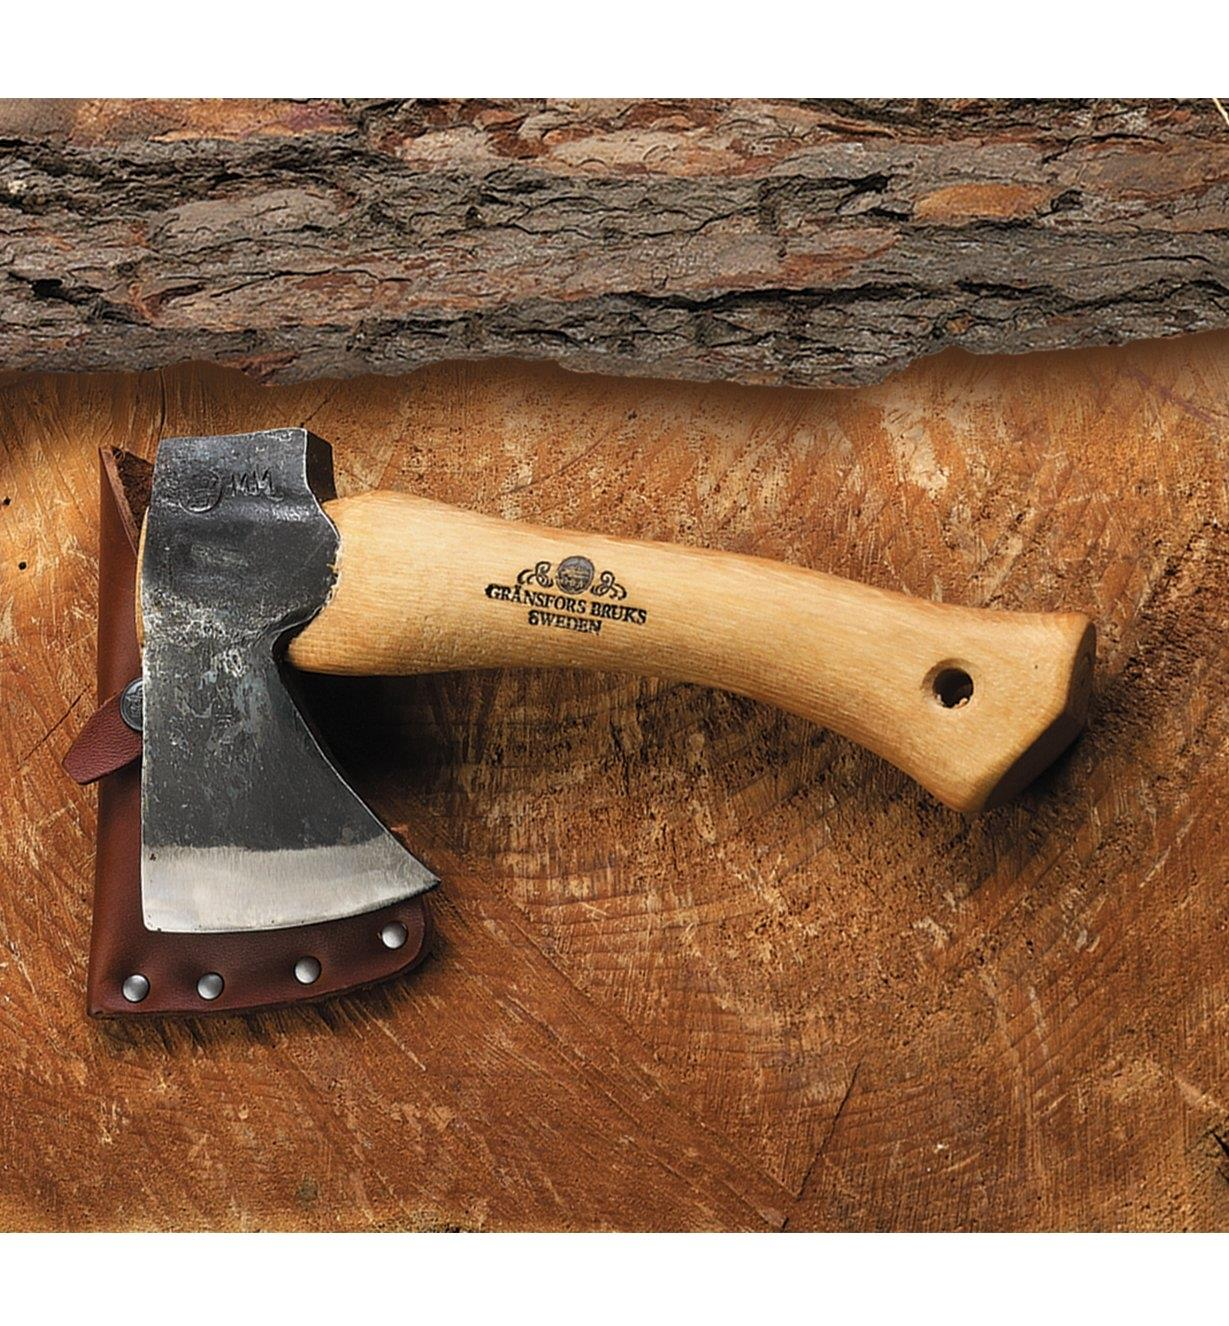 48U0550 - Gränsfors Small Carving Axe